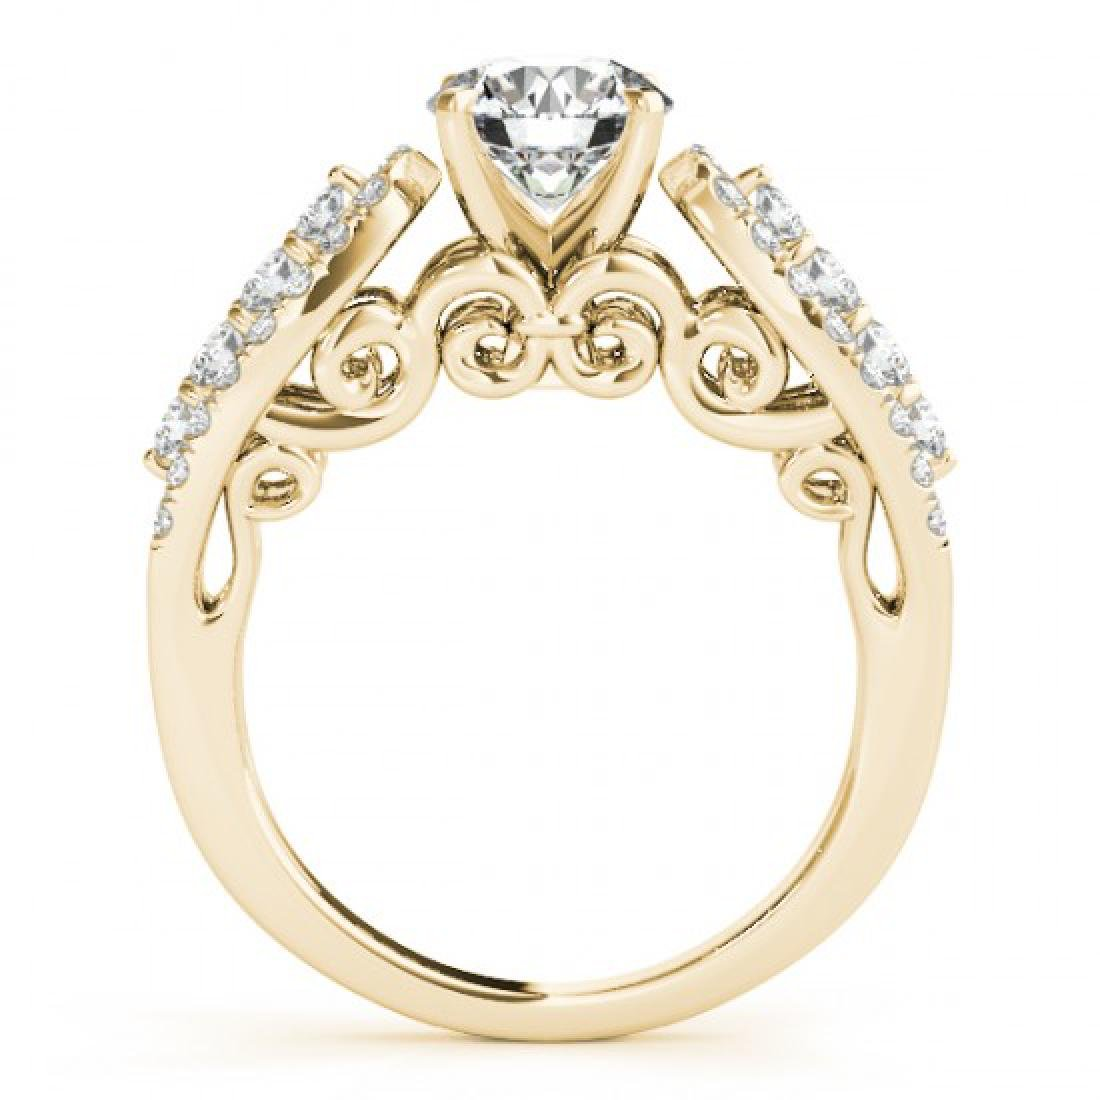 1.45 CTW Certified VS/SI Diamond Solitaire Ring 14K - 2